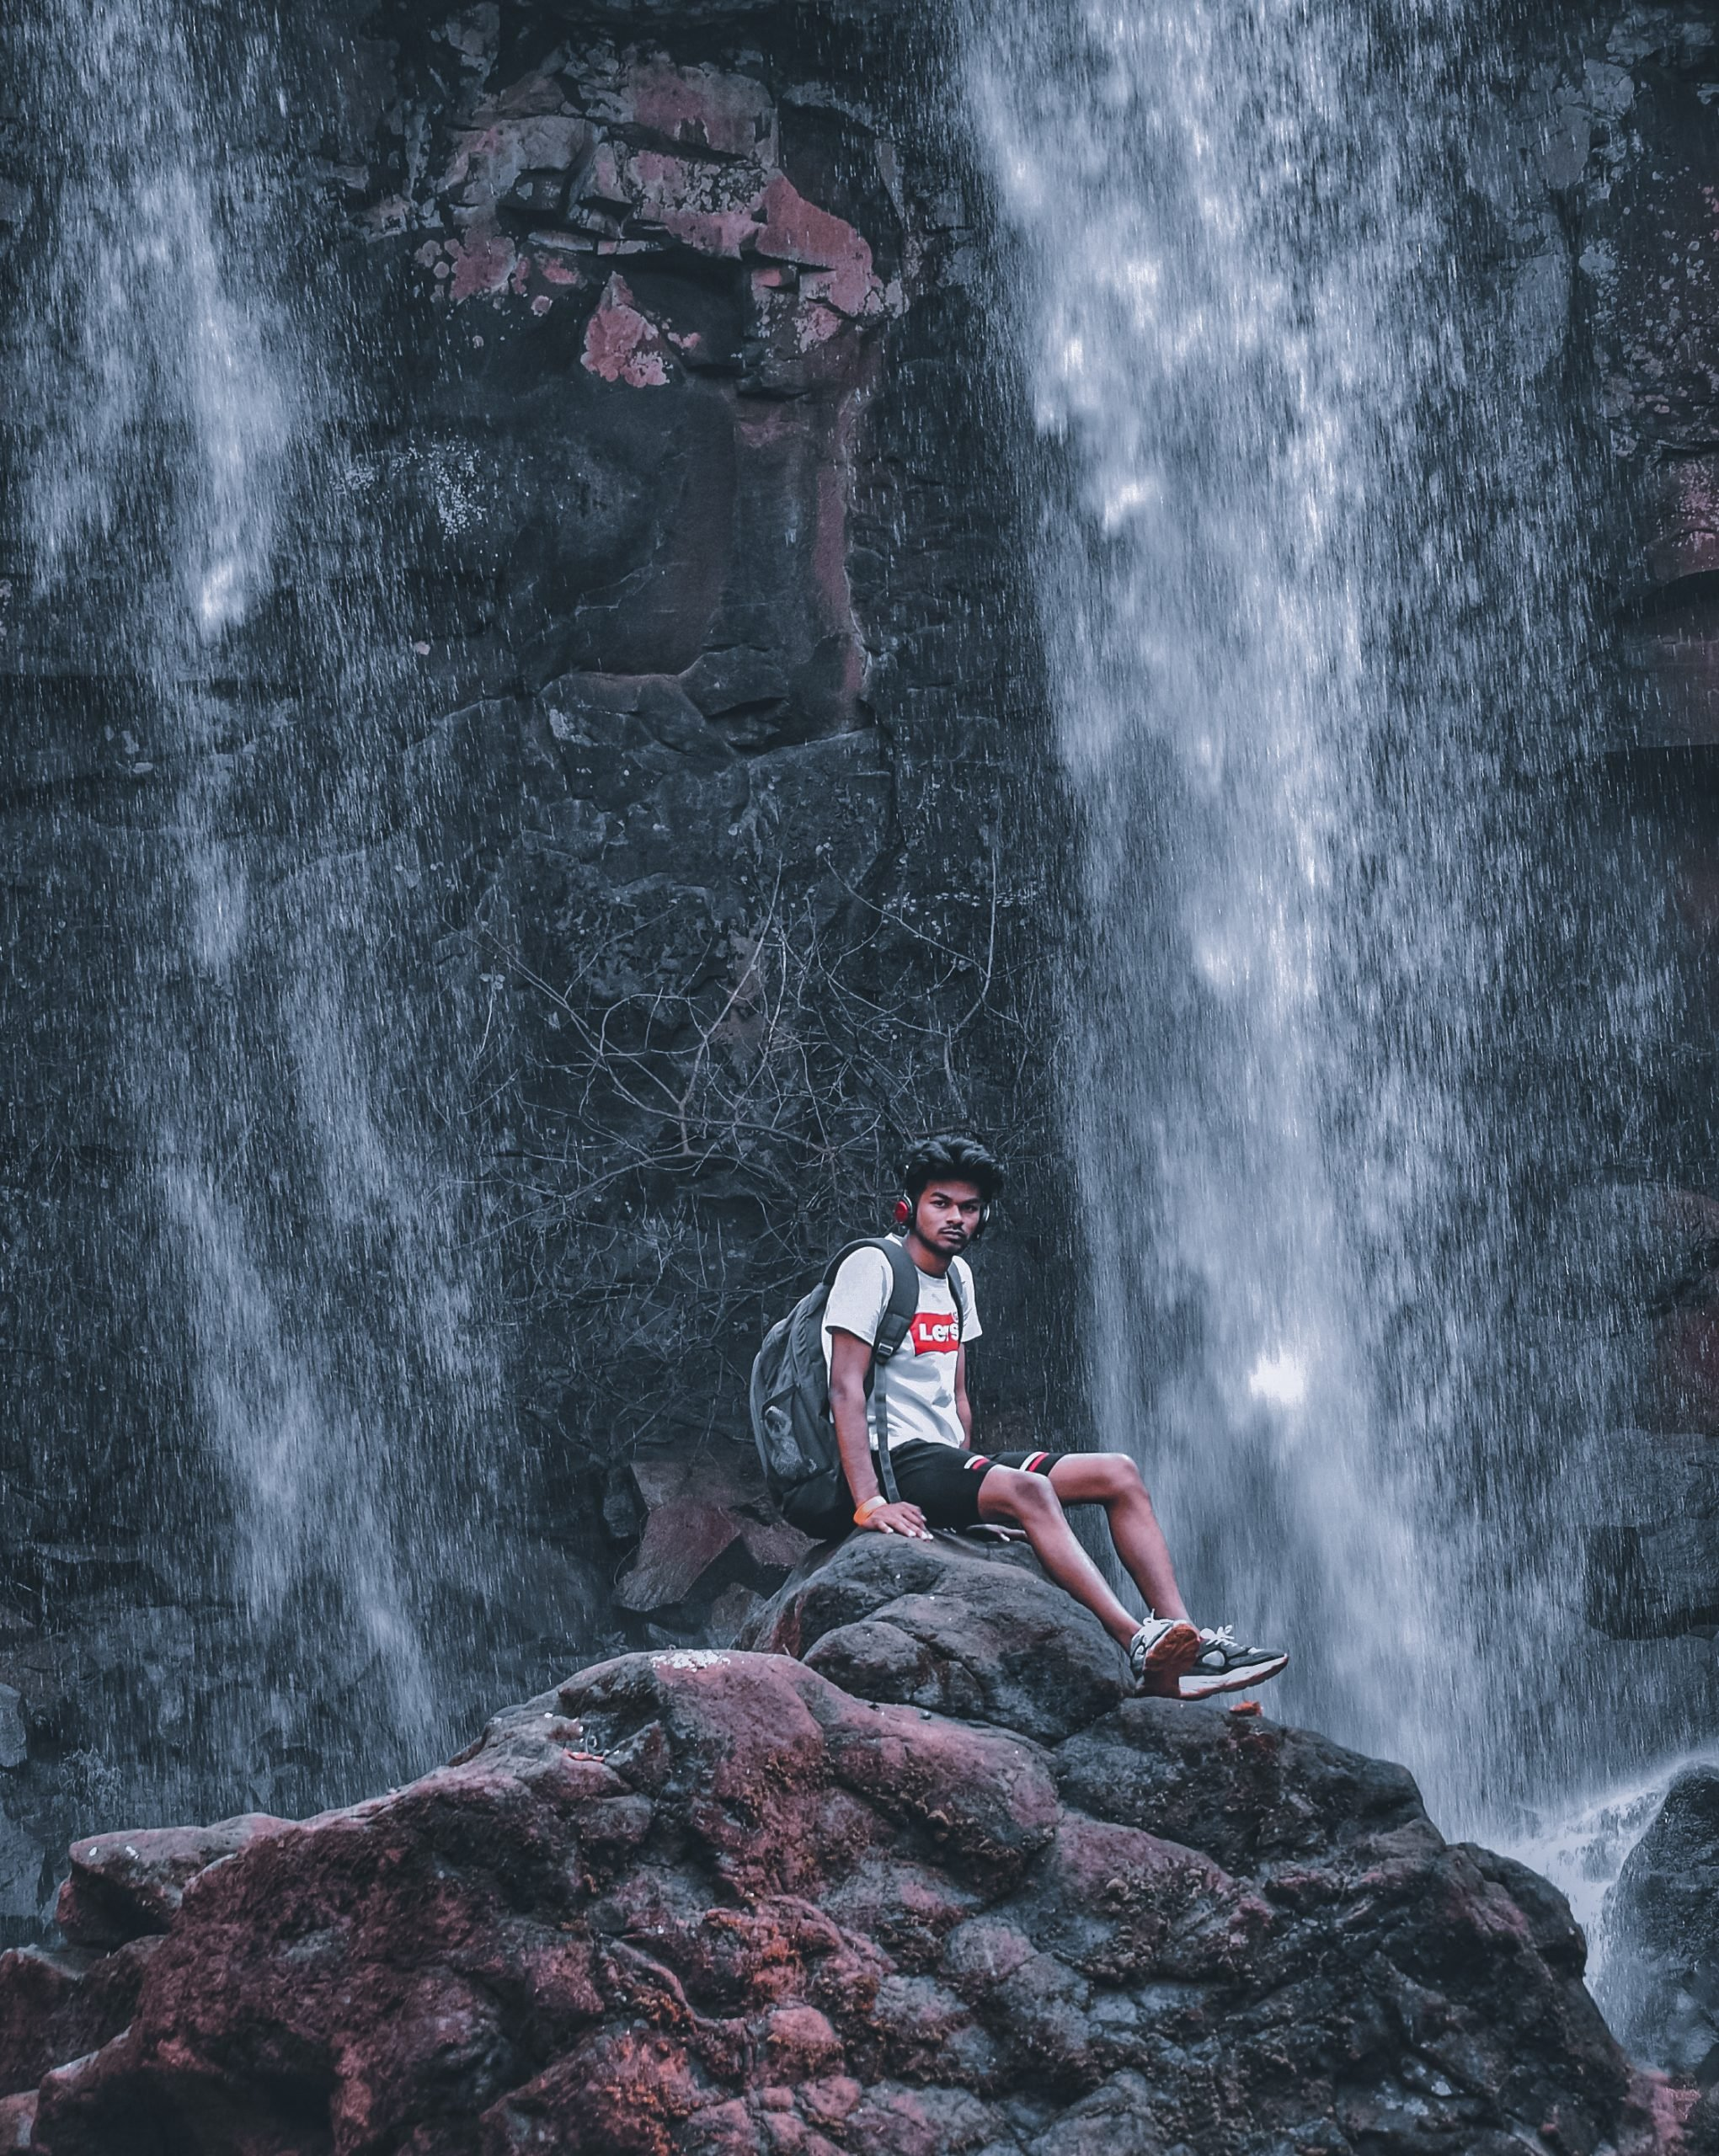 A boy sitting under a waterfall